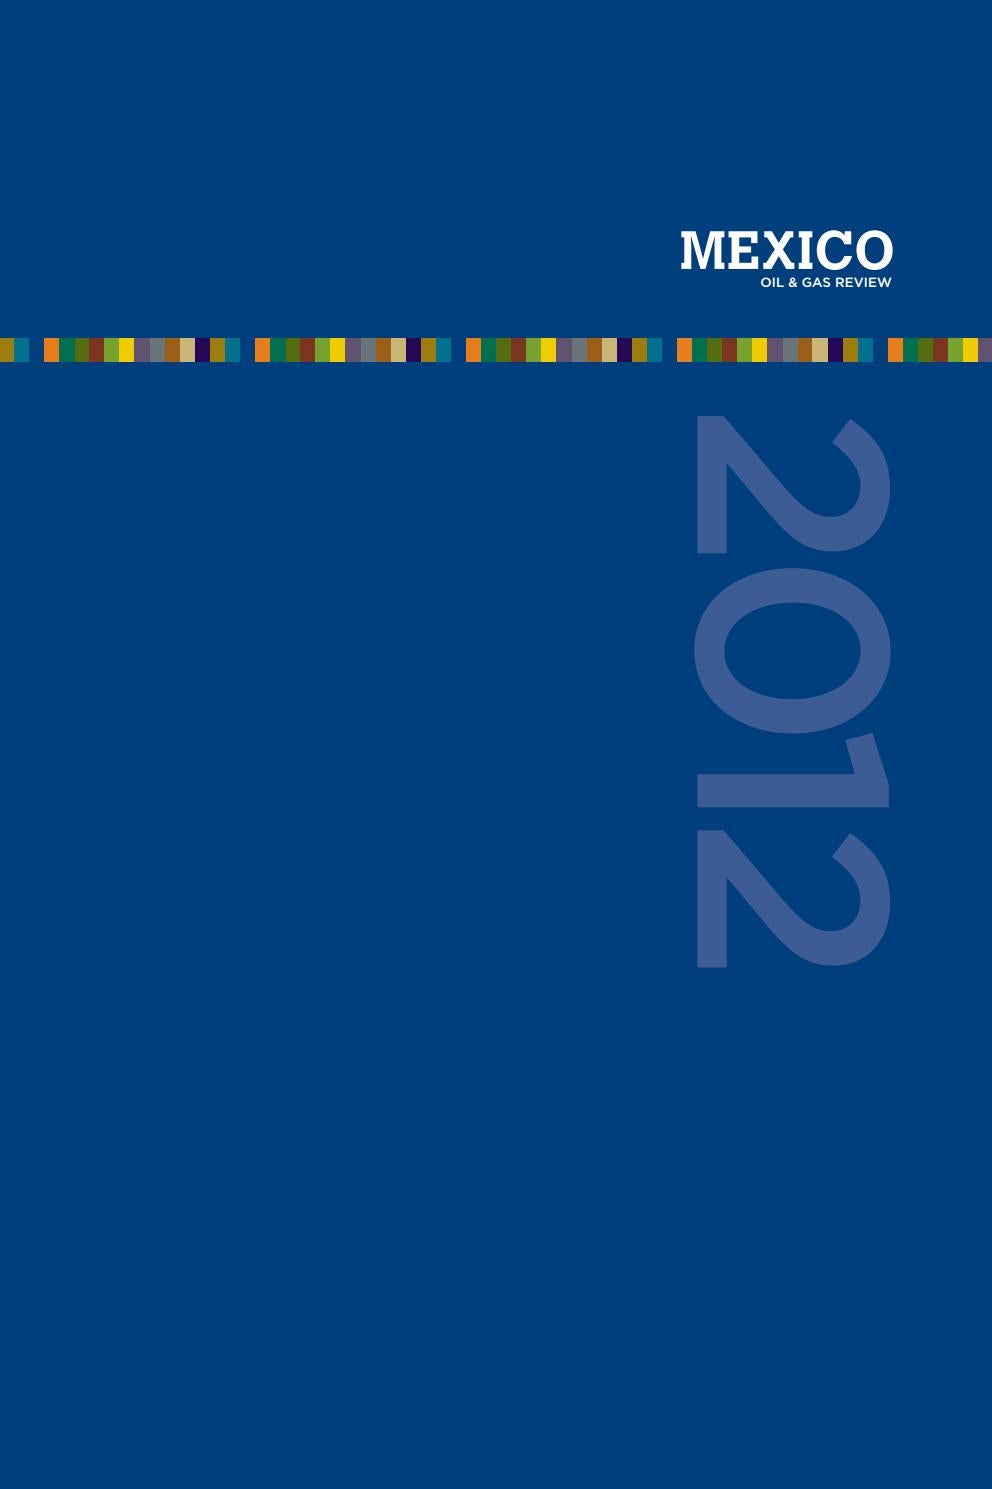 Mexico Oil Gas Review 2012 By Business Publishing Issuu 2r Ladder Dac Public Circuit Online Simulator